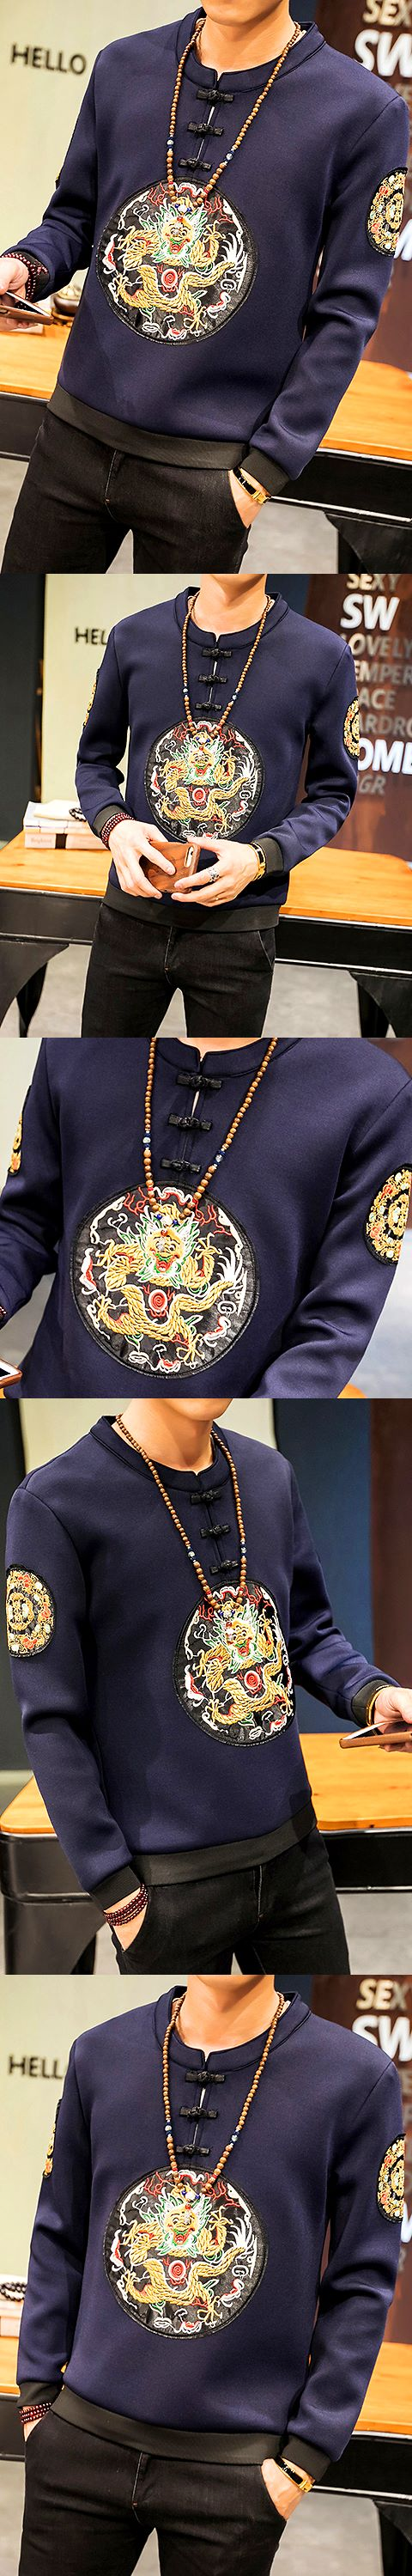 Men's Long-sleeve Top with Dragon Embroidery (RM)